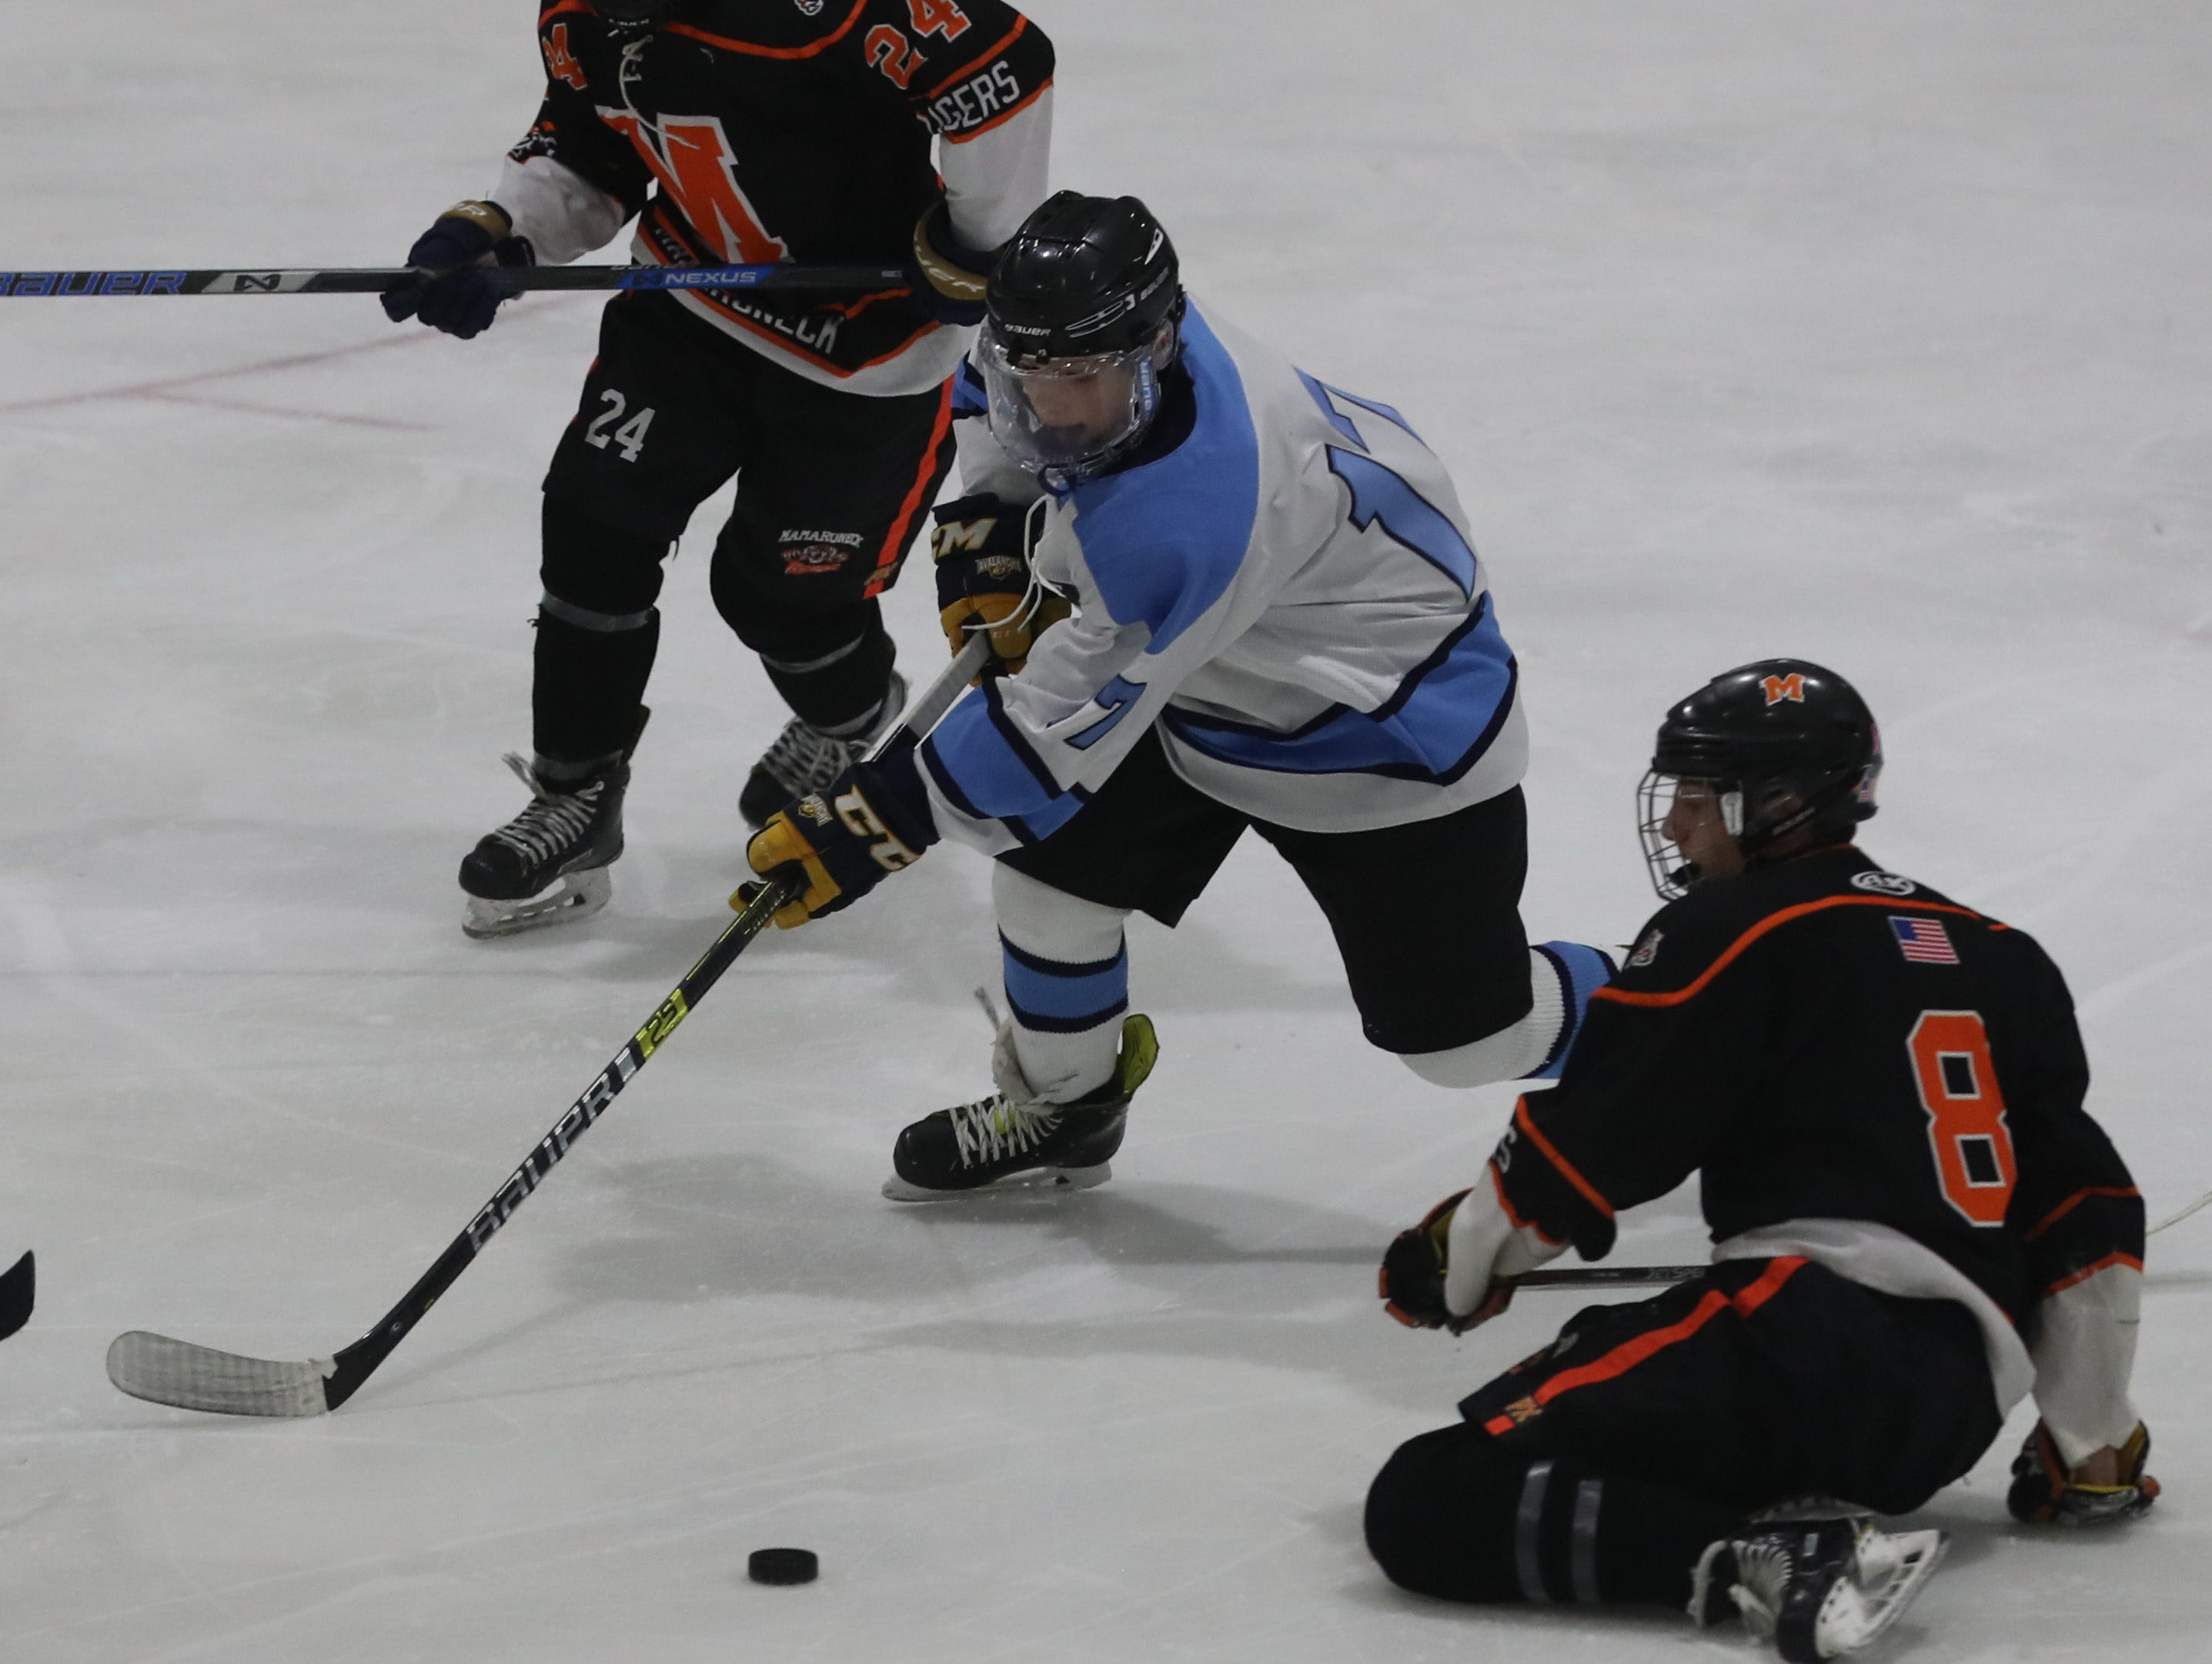 Suffern's Ben Burns battles Mamaroneck's Charile Mollin during the Section 1 Division 1 championship game at Sport-o-Rama in Monsey Feb. 24, 2019. Suffern defeated Mamaroneck 4-1.